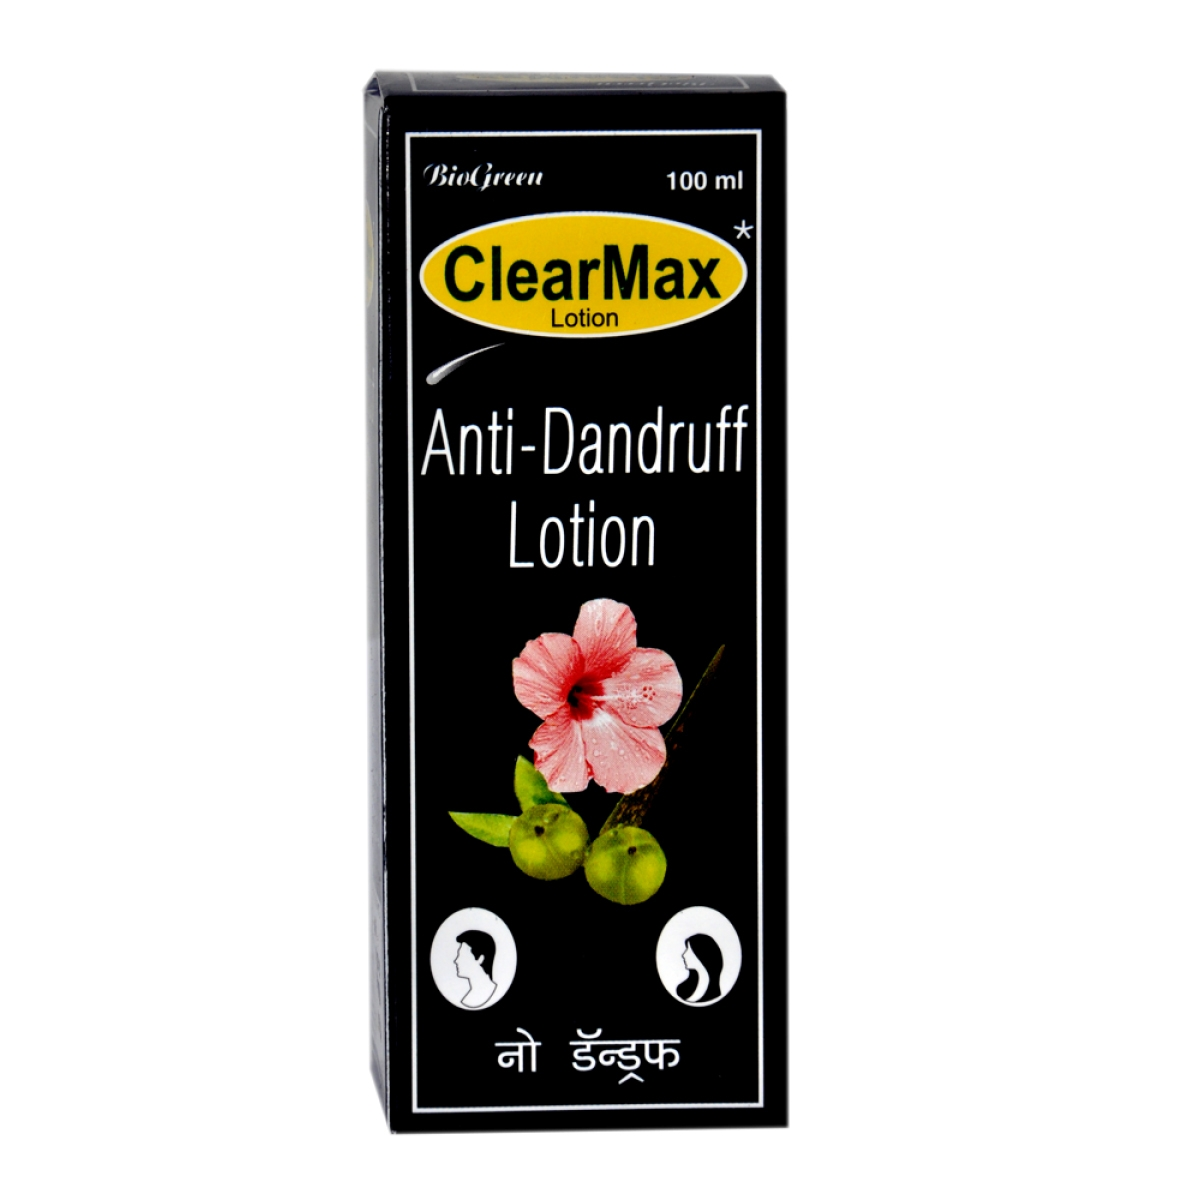 Clear Max Lotion In Jhajjar